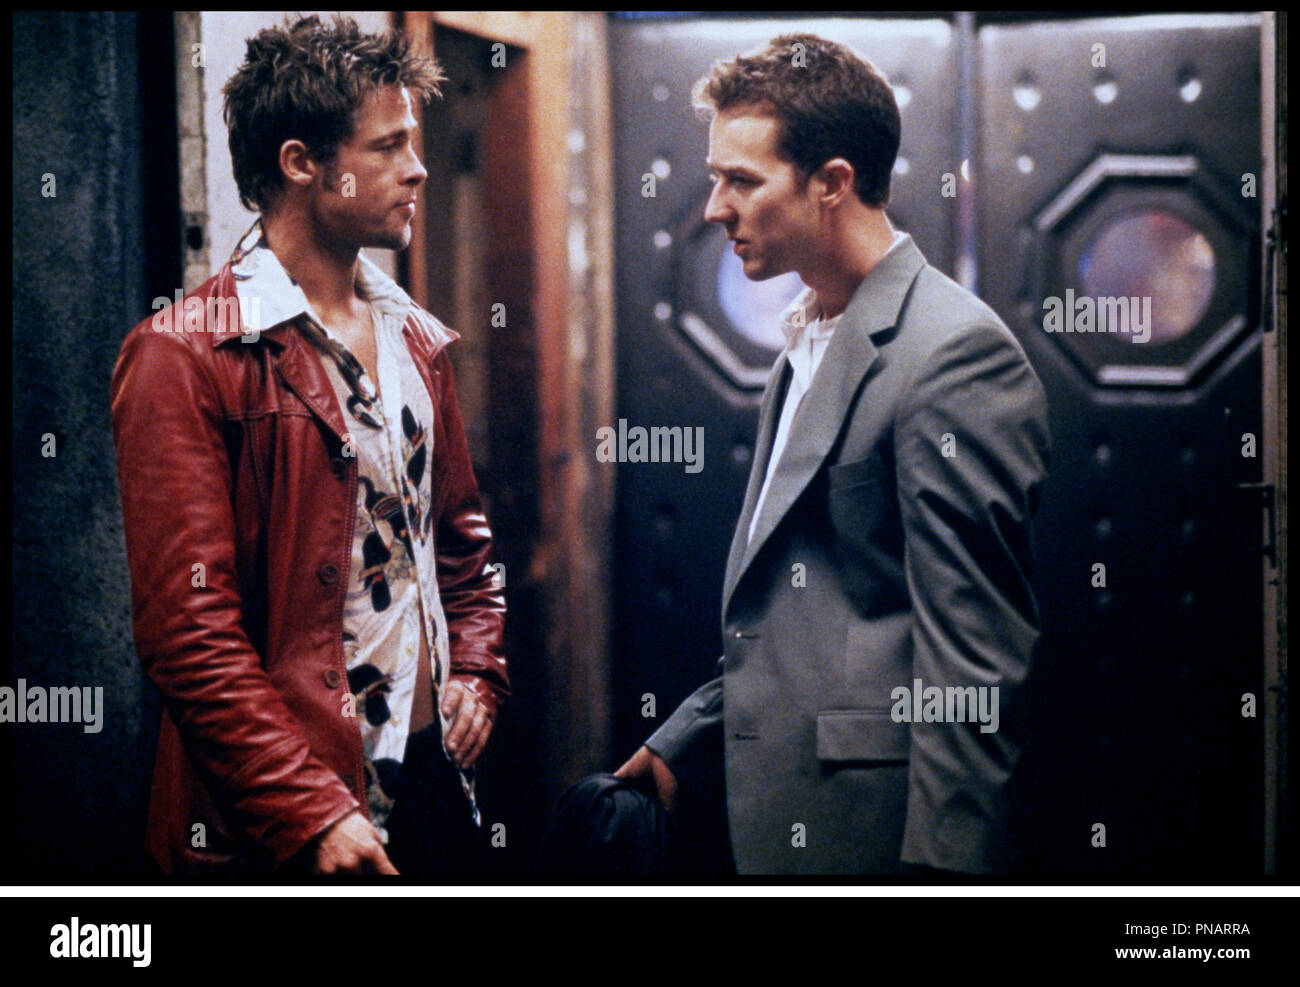 brad pitt fight club 1999 stock photos brad pitt fight club 1999 stock images alamy. Black Bedroom Furniture Sets. Home Design Ideas